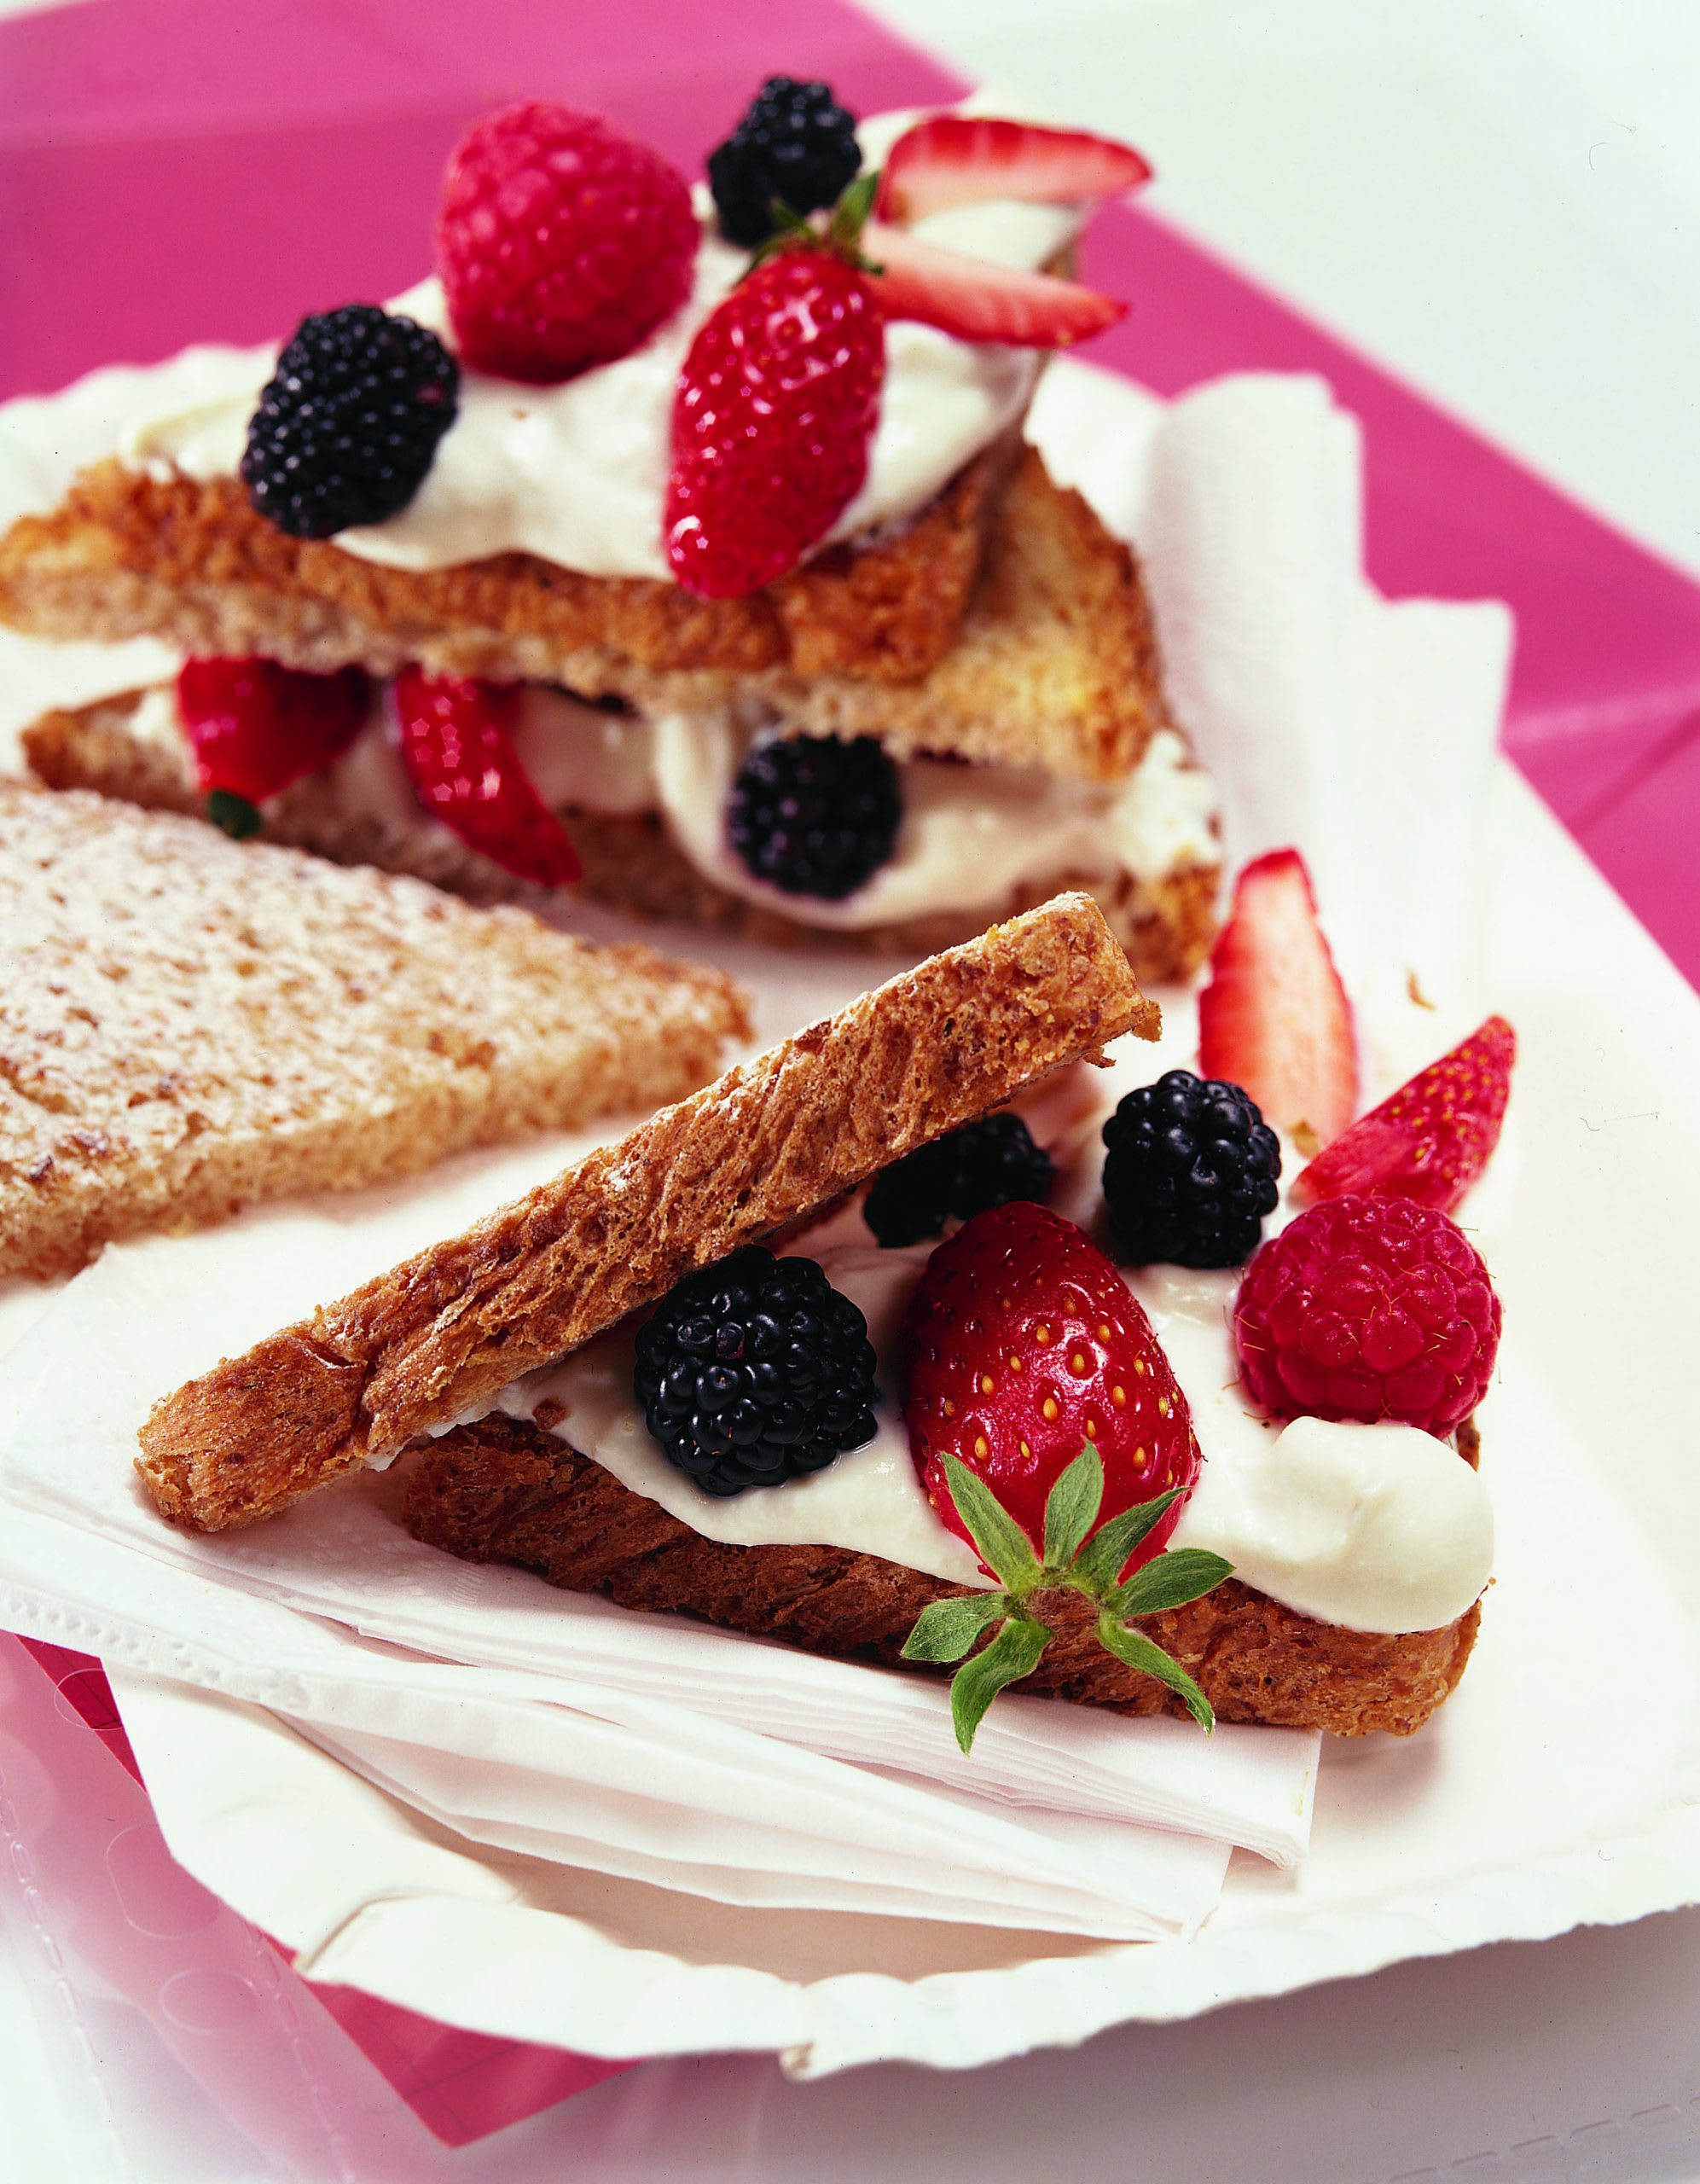 Mini-sandwich ricotta-fruits rouges